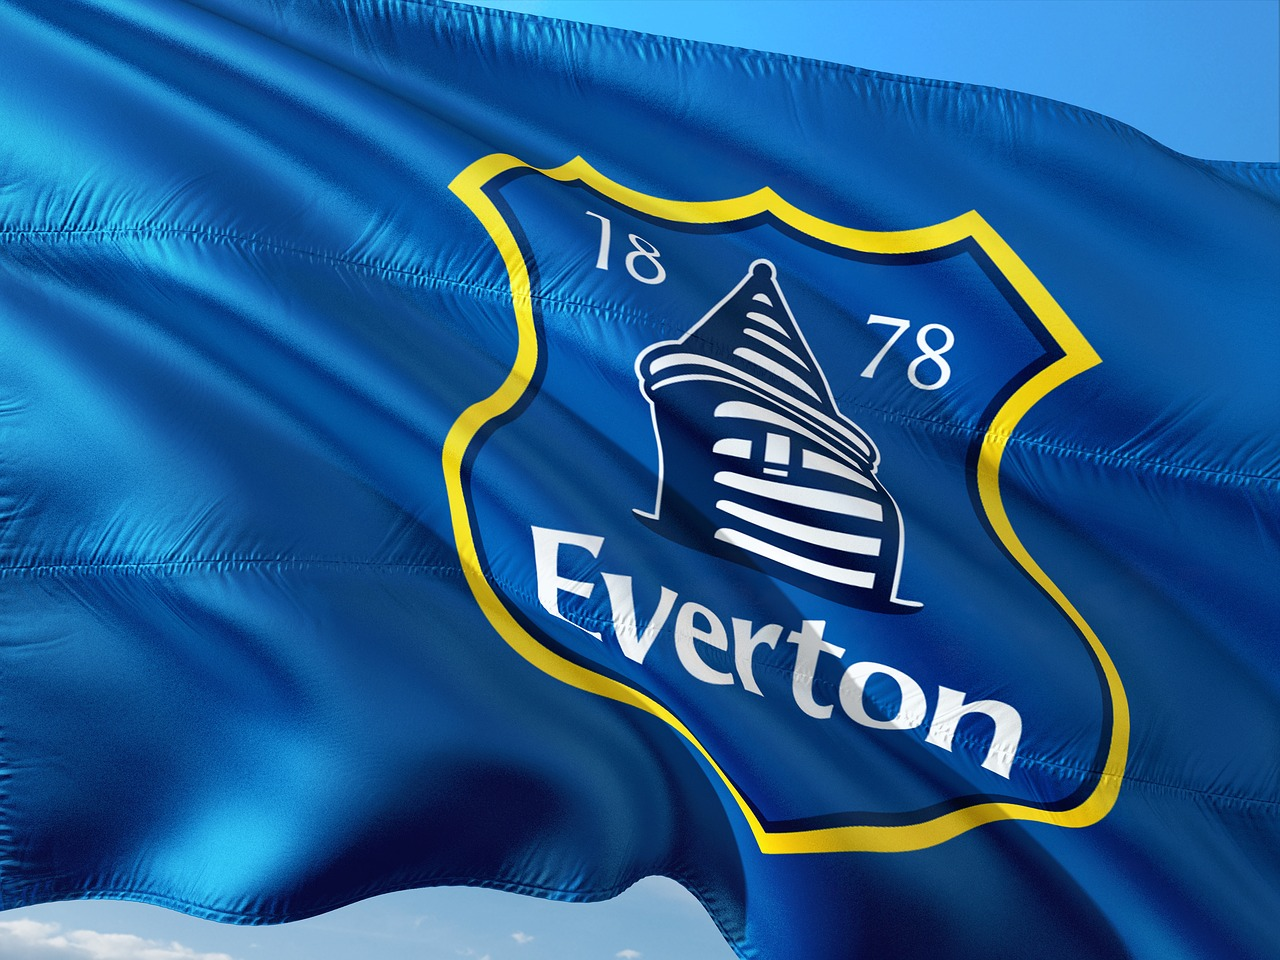 Everton FC - flag with logo